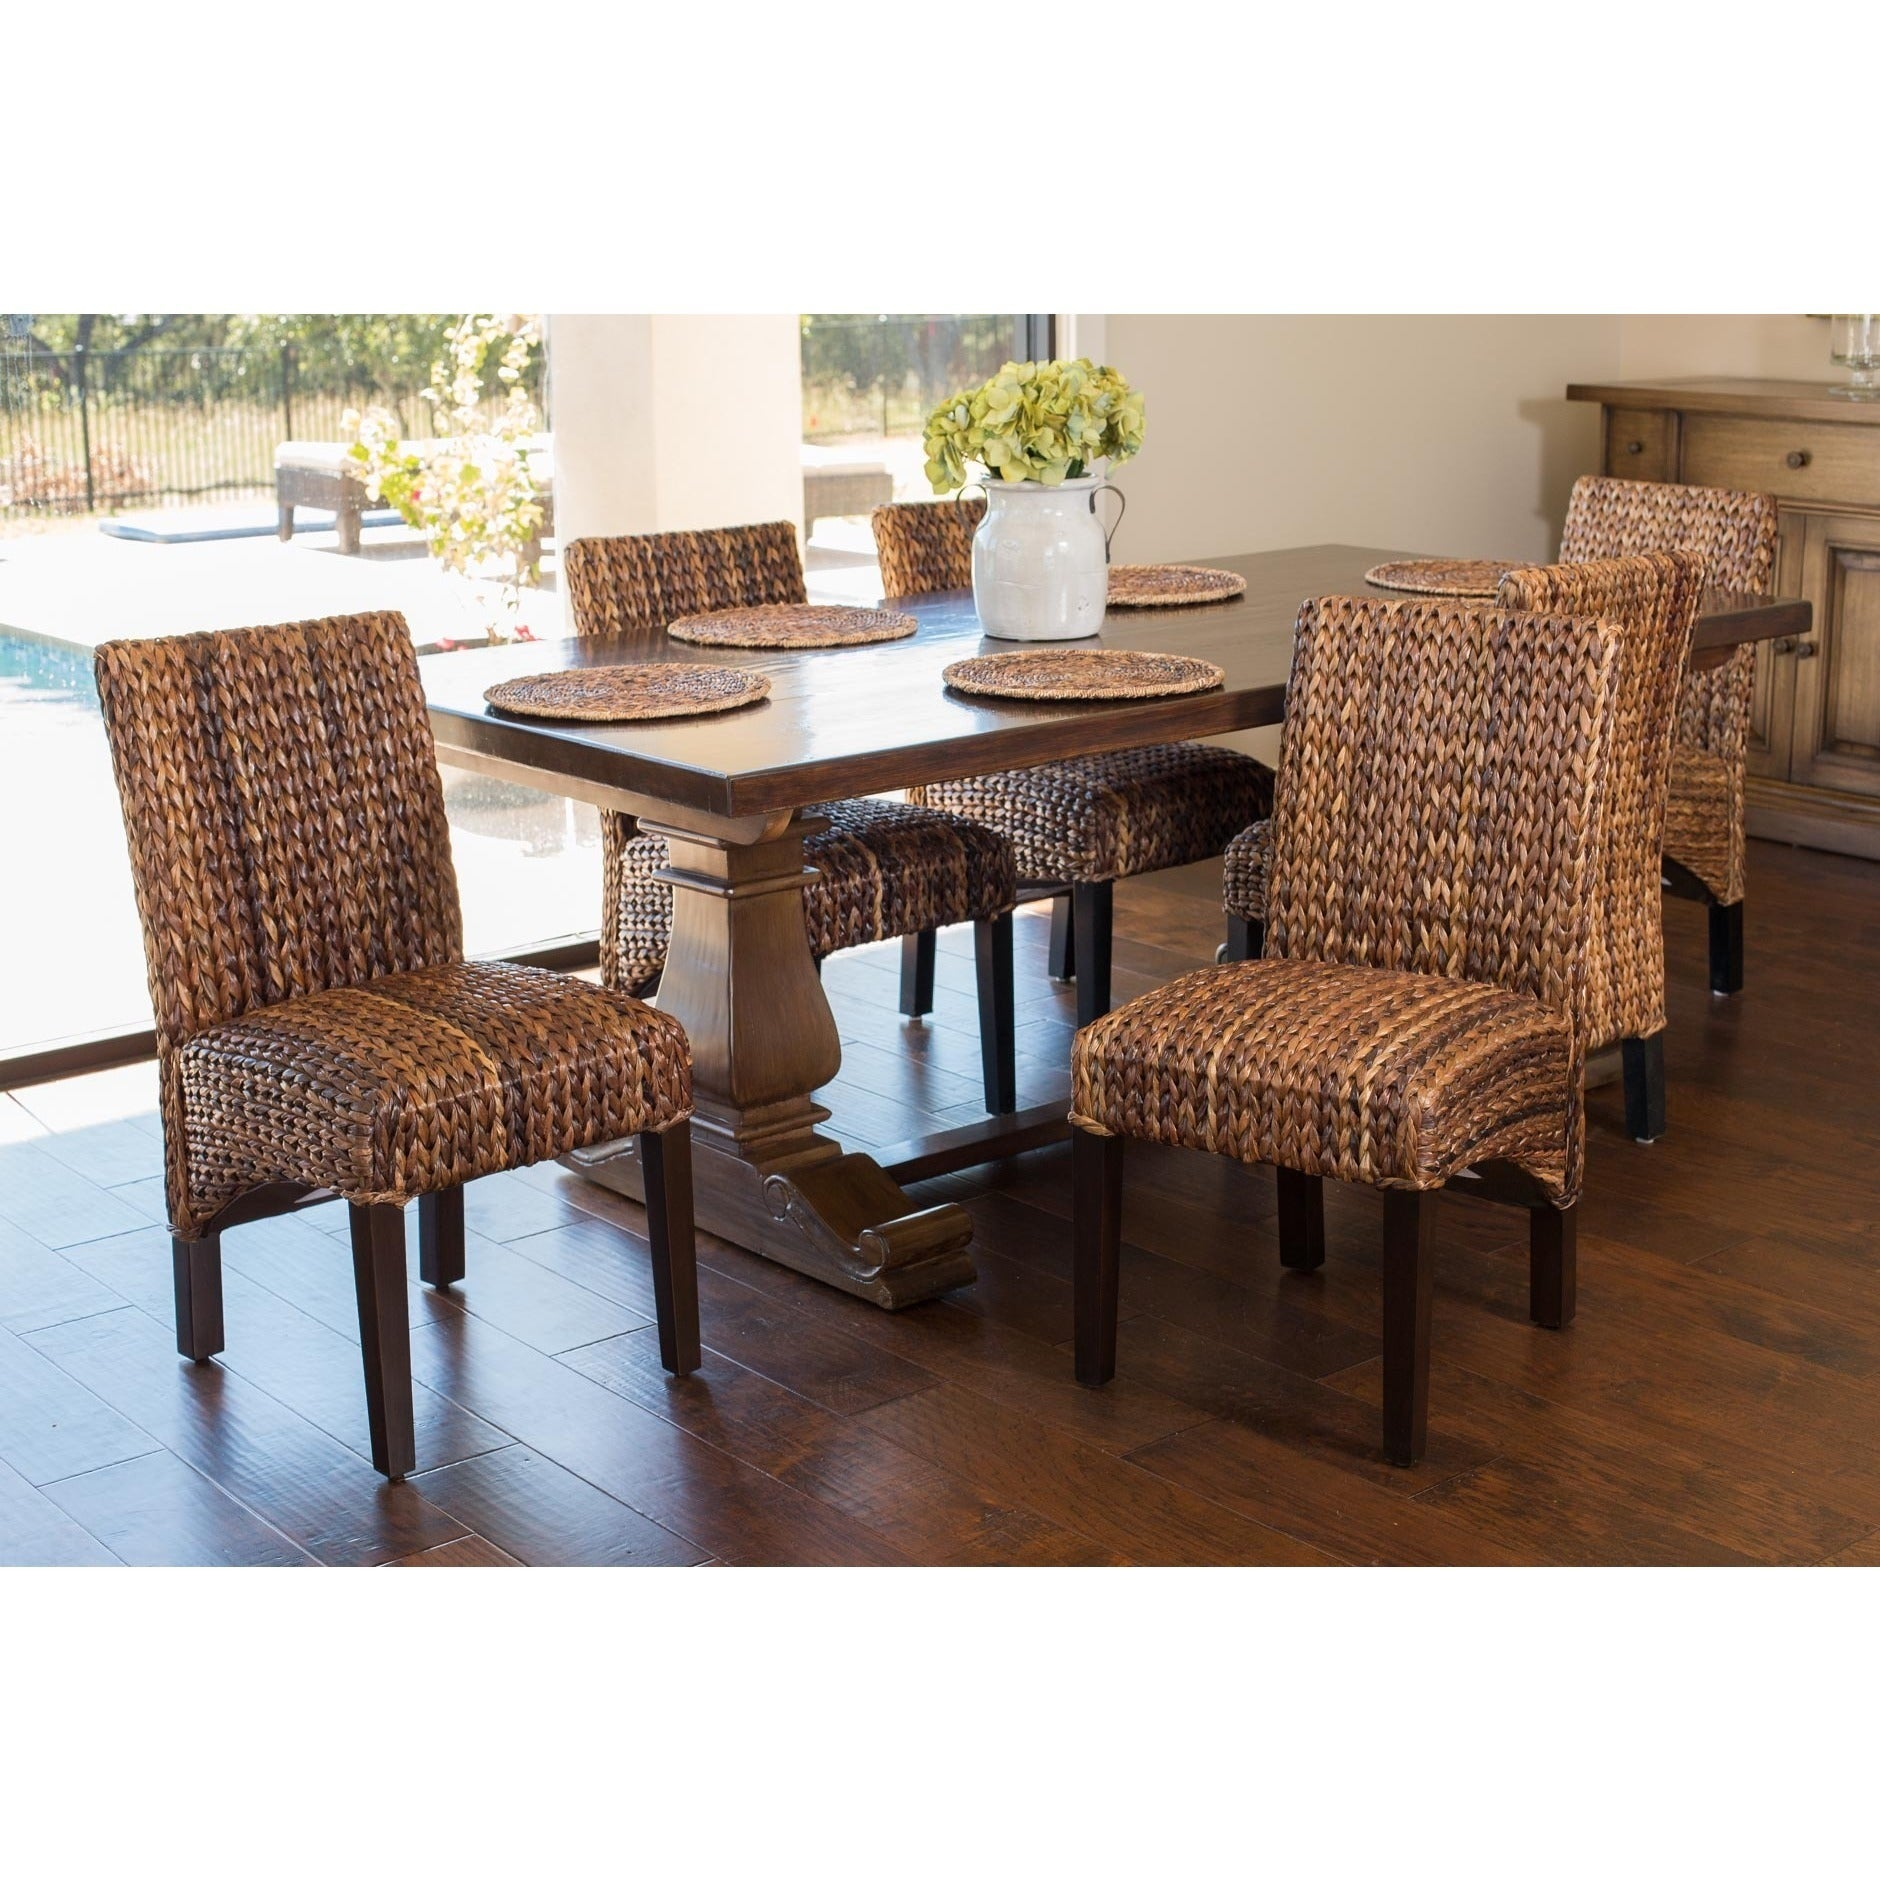 Shop Gracewood Hollow Hemingway Seagrass Dining Chair (Set Of 2)   Free  Shipping Today   Overstock.com   20000905